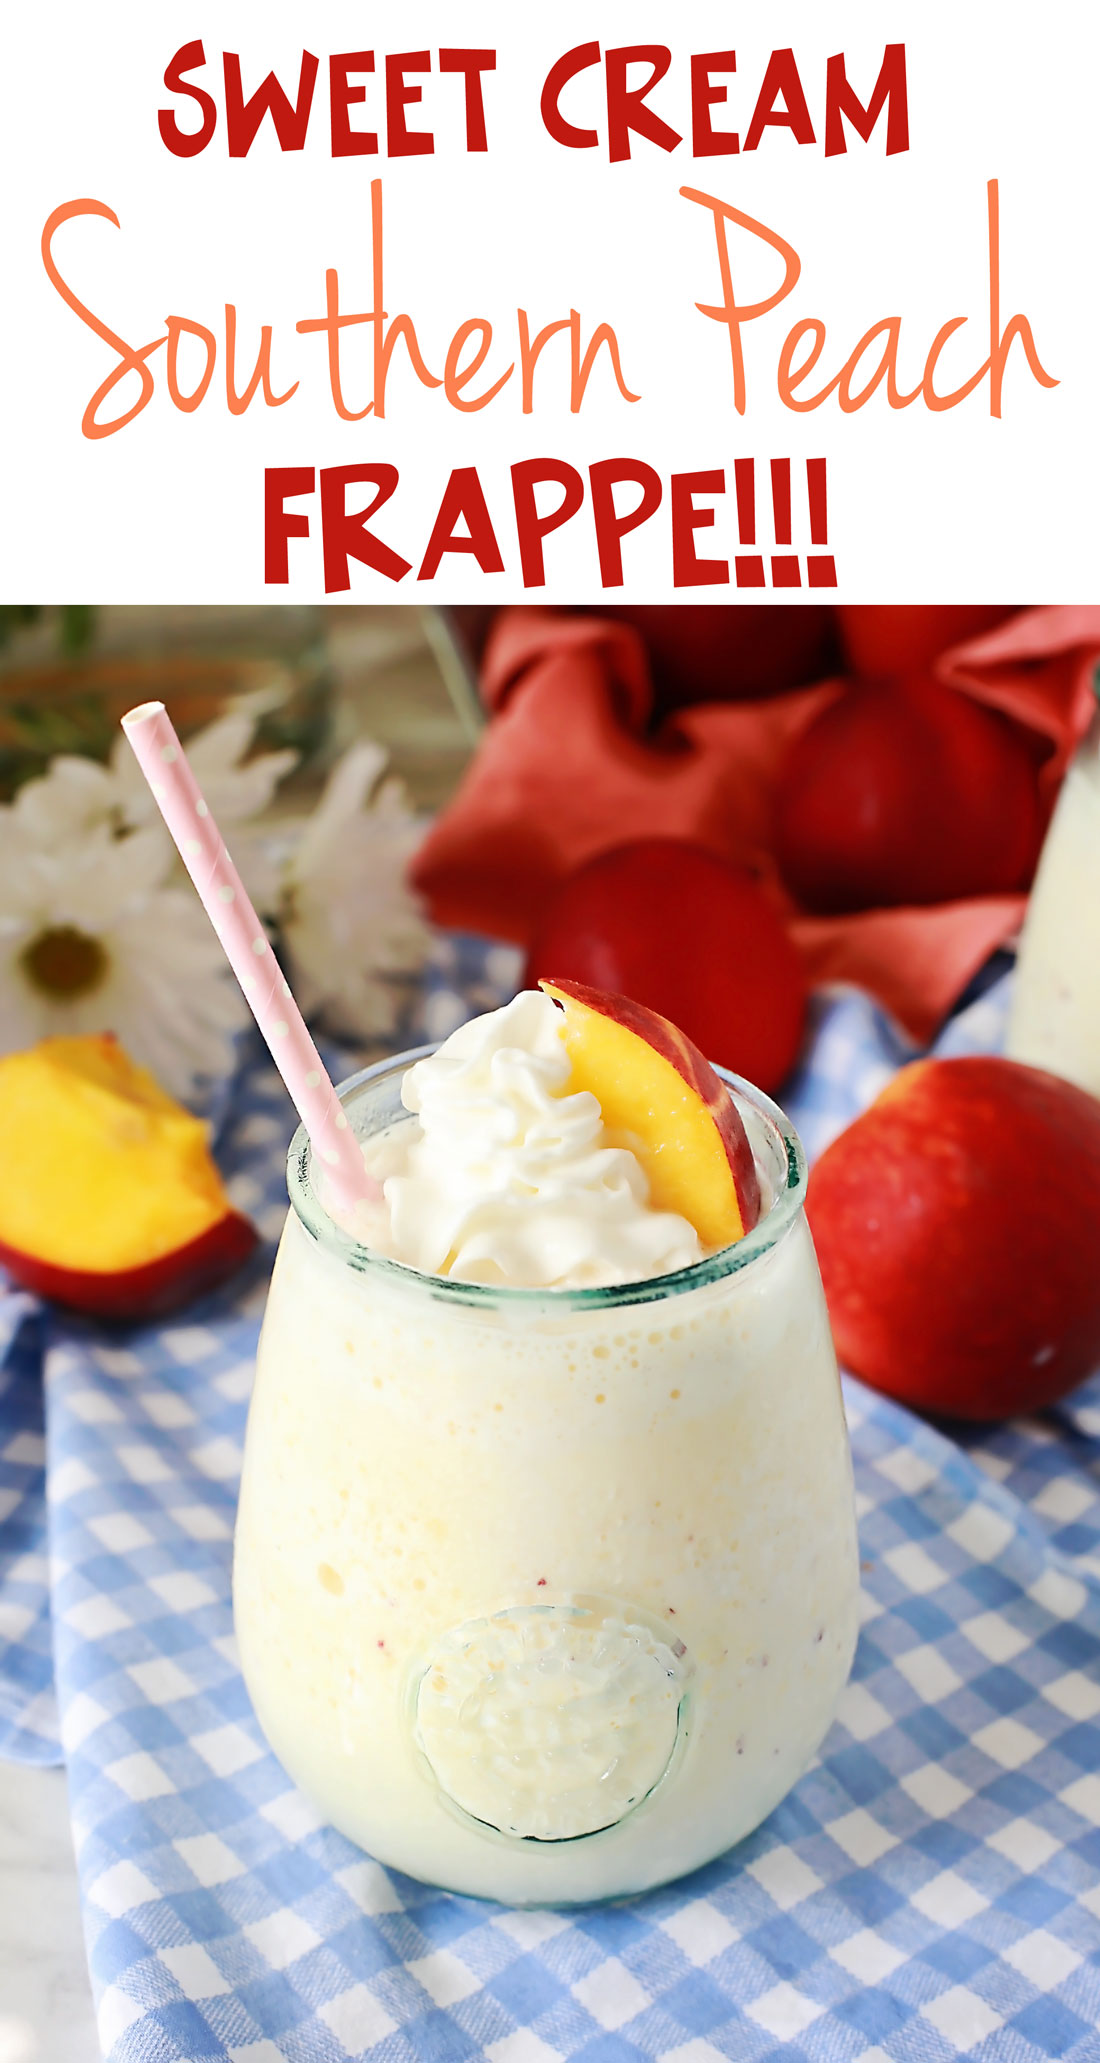 Super AMAZING Sweet Peach Southern Peach Frappe by Flirting with Flavor!